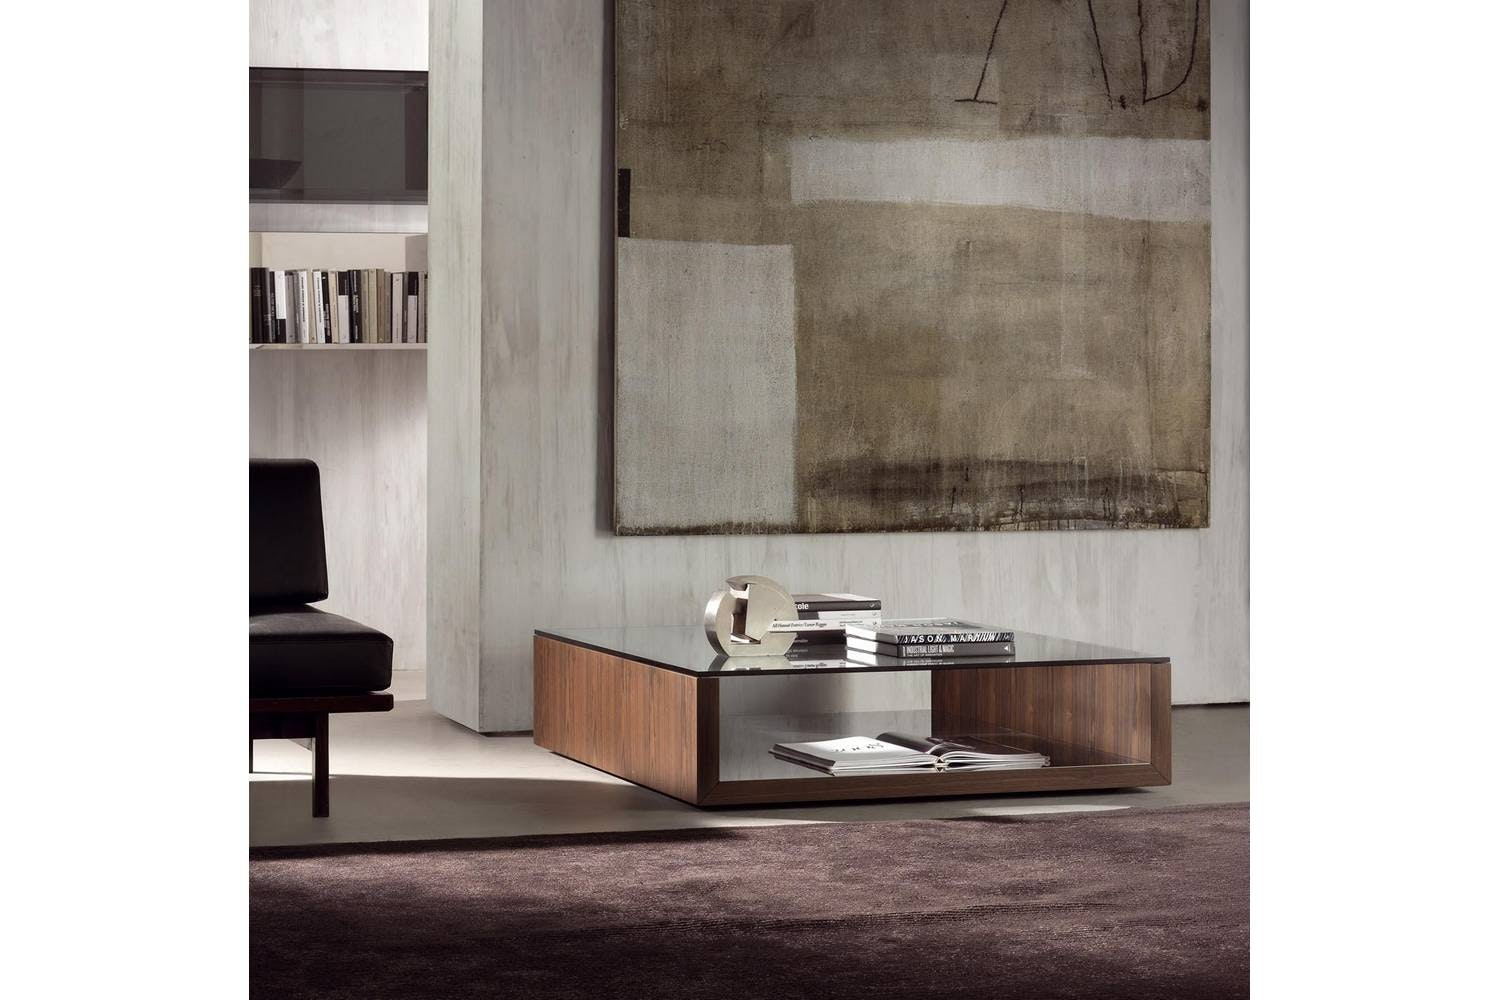 Sloane Coffee Table by Gabriele & Oscar Buratti for Acerbis